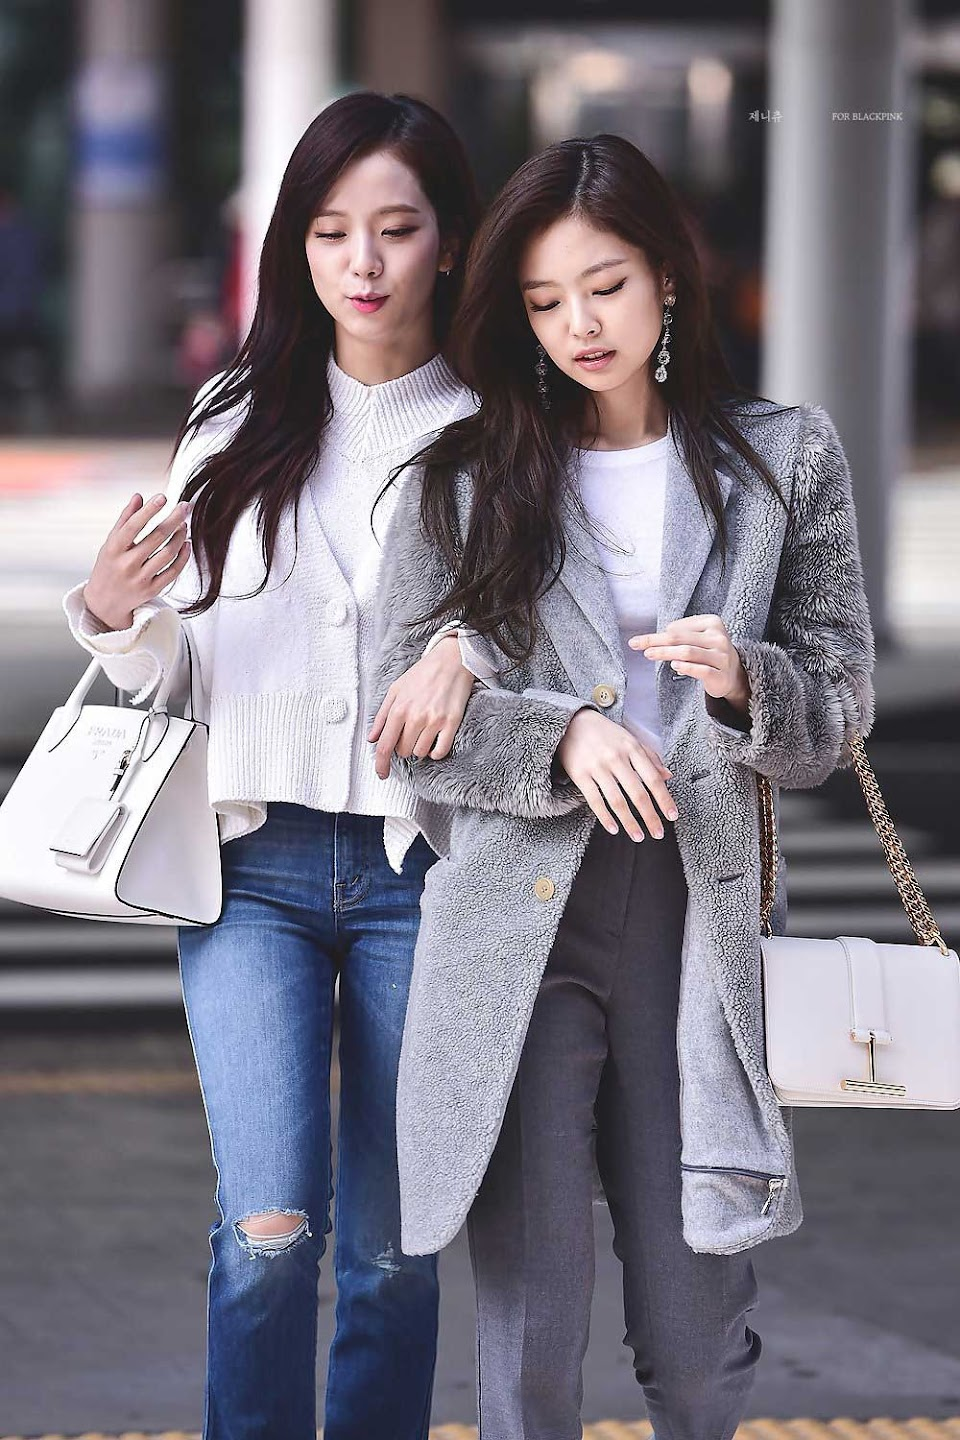 high-quality-photos-blackpink-jisoo-jennie-jensoo-at-jeju-airport-3